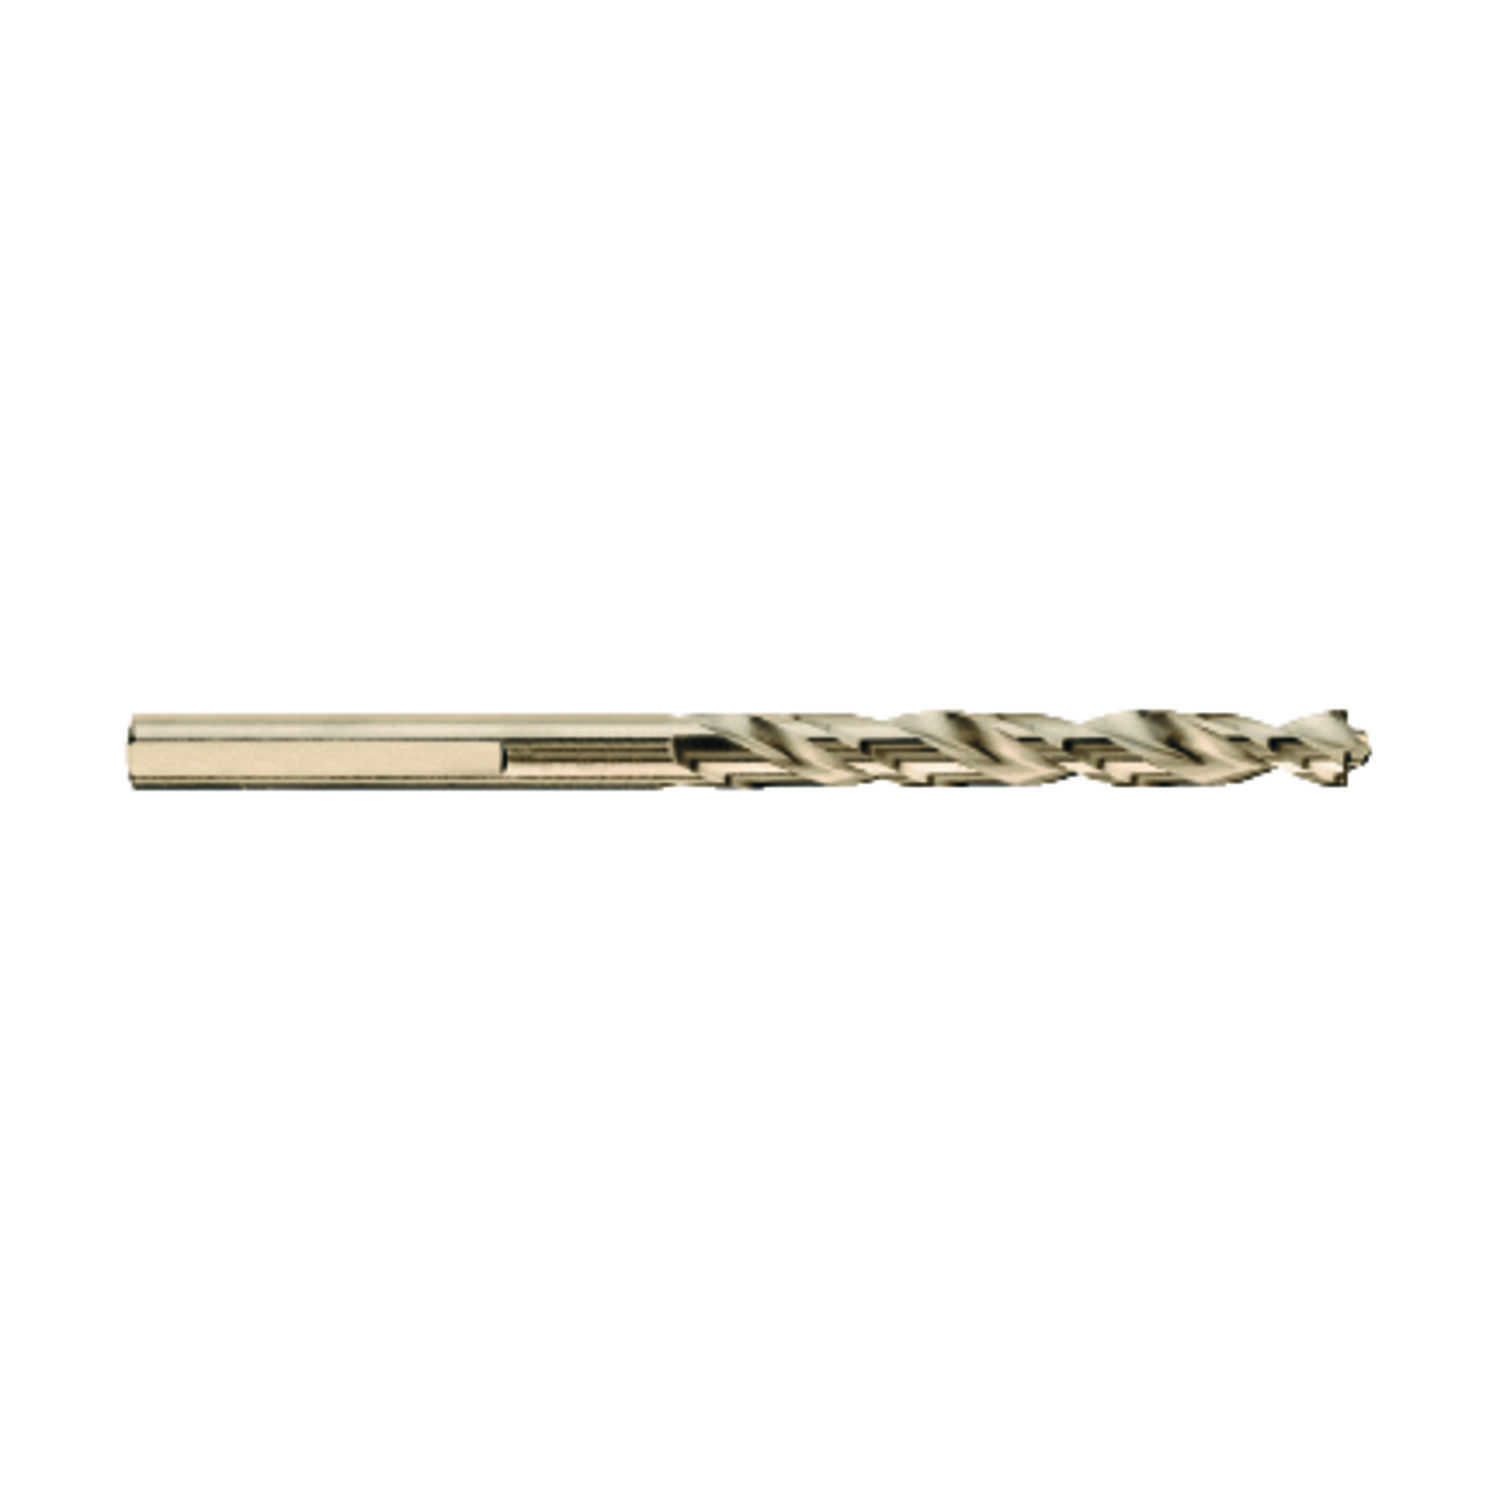 DeWalt  Pilot Point  17/64 in. Dia. x 4-1/8 in. L High Speed Steel  3-Flat Shank  1 pc. Split Point